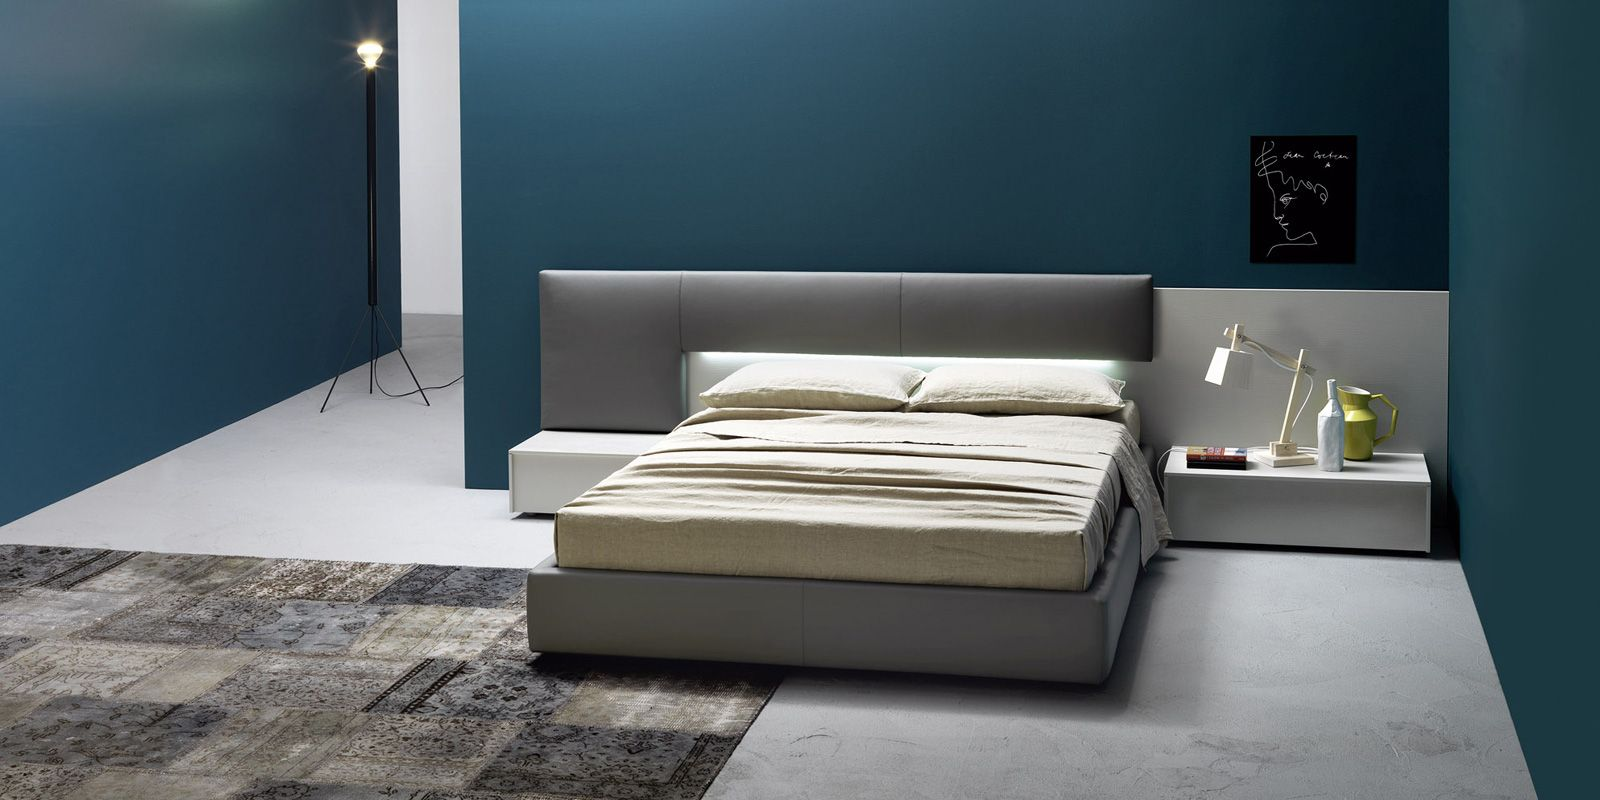 Dedalo bed by Sangiacomo | spaces of interest | Pinterest ...